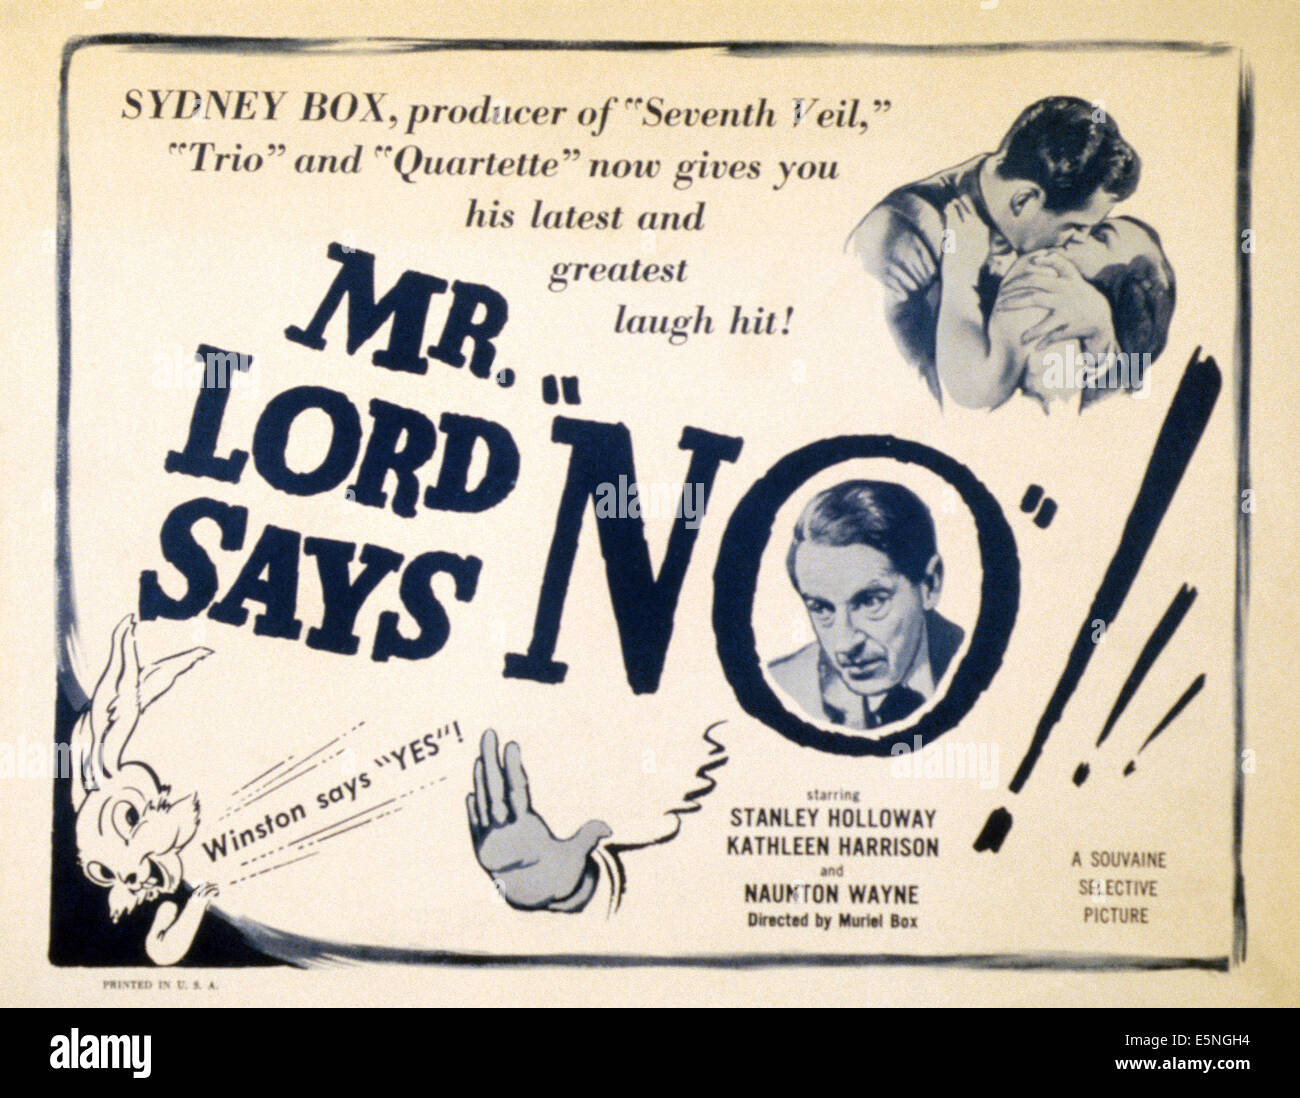 MR. LORD SAYS NO, (aka THE HAPPY FAMILY), Stanley Holloway (bottom), 1952 Stock Photo